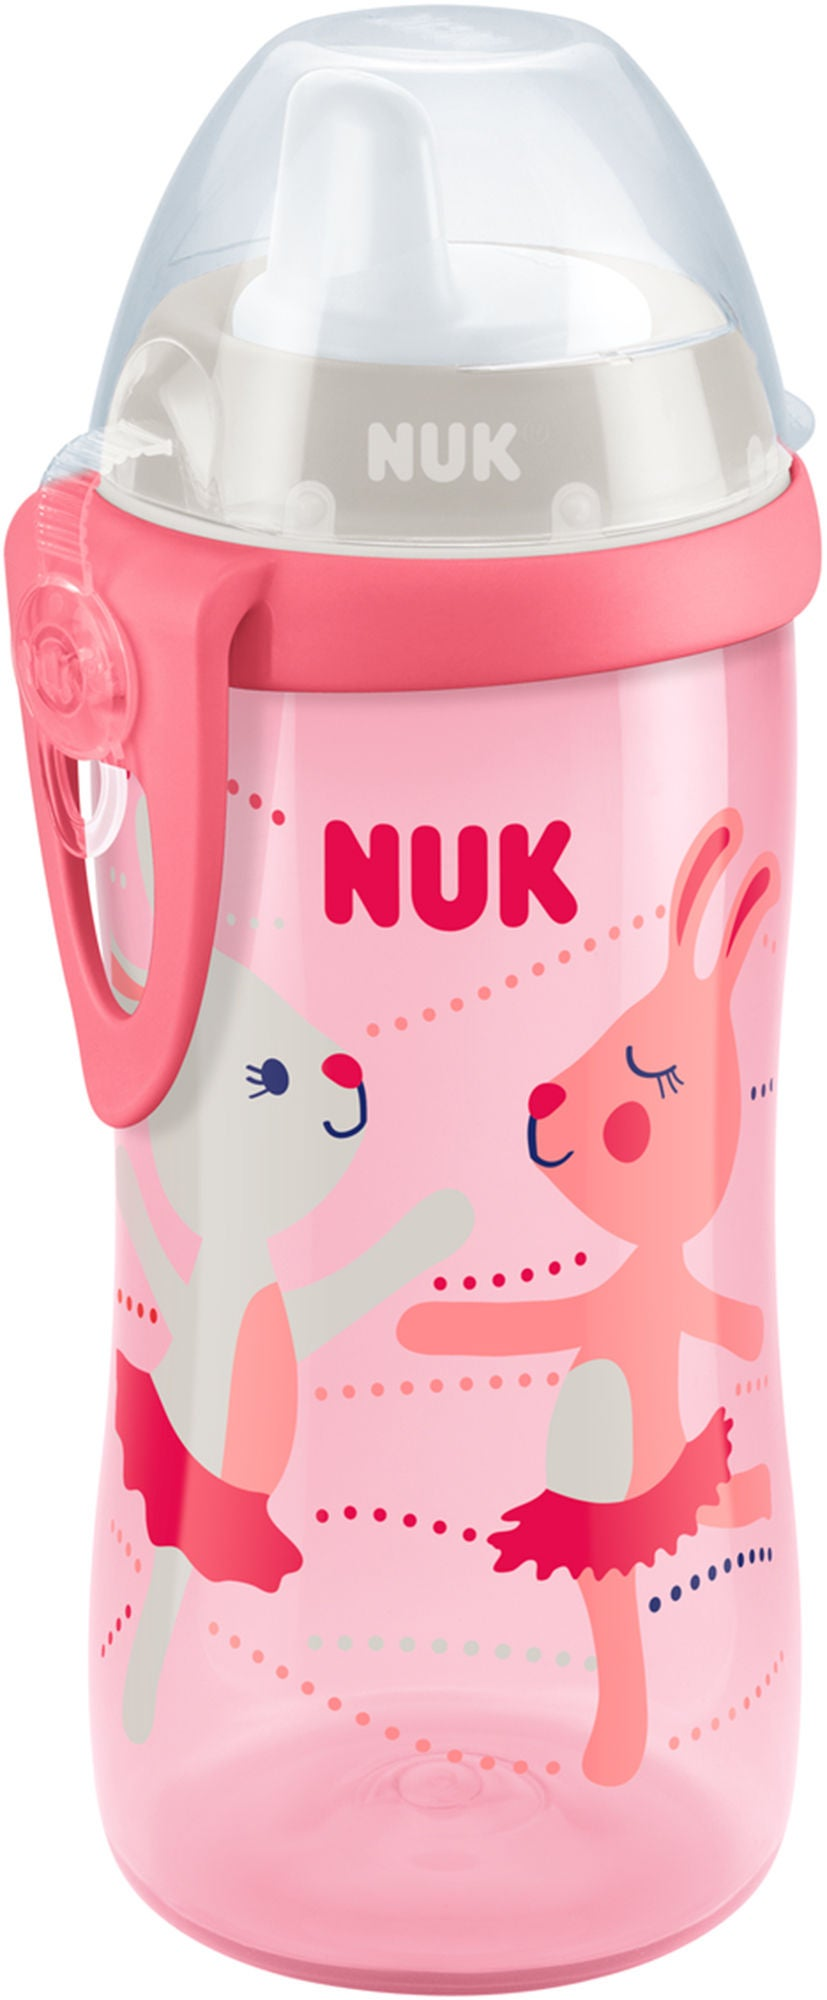 NUK Kiddy Cup 300 ml Hare, Rosa